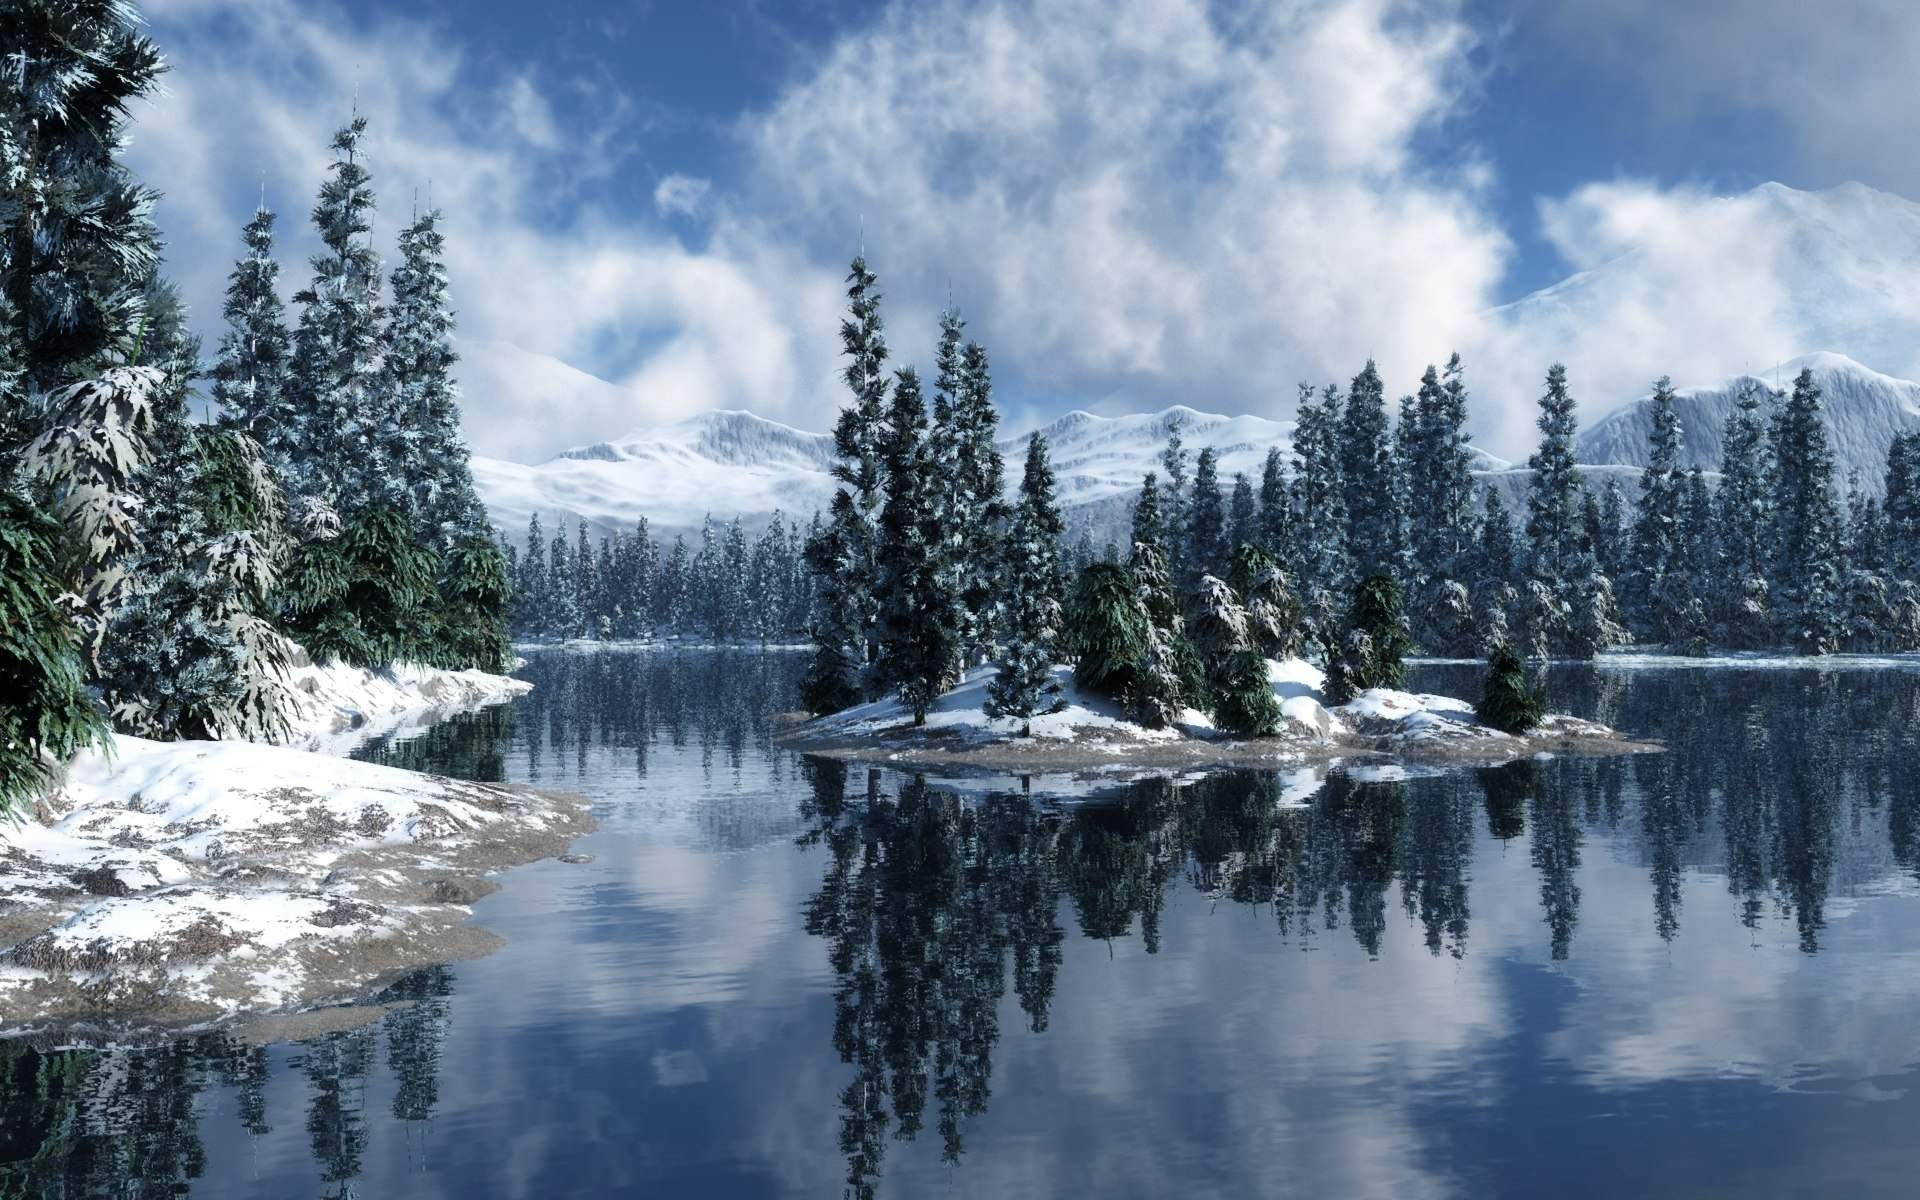 Snowy Screensavers Forest Christmas wallpapers HD free - 201957